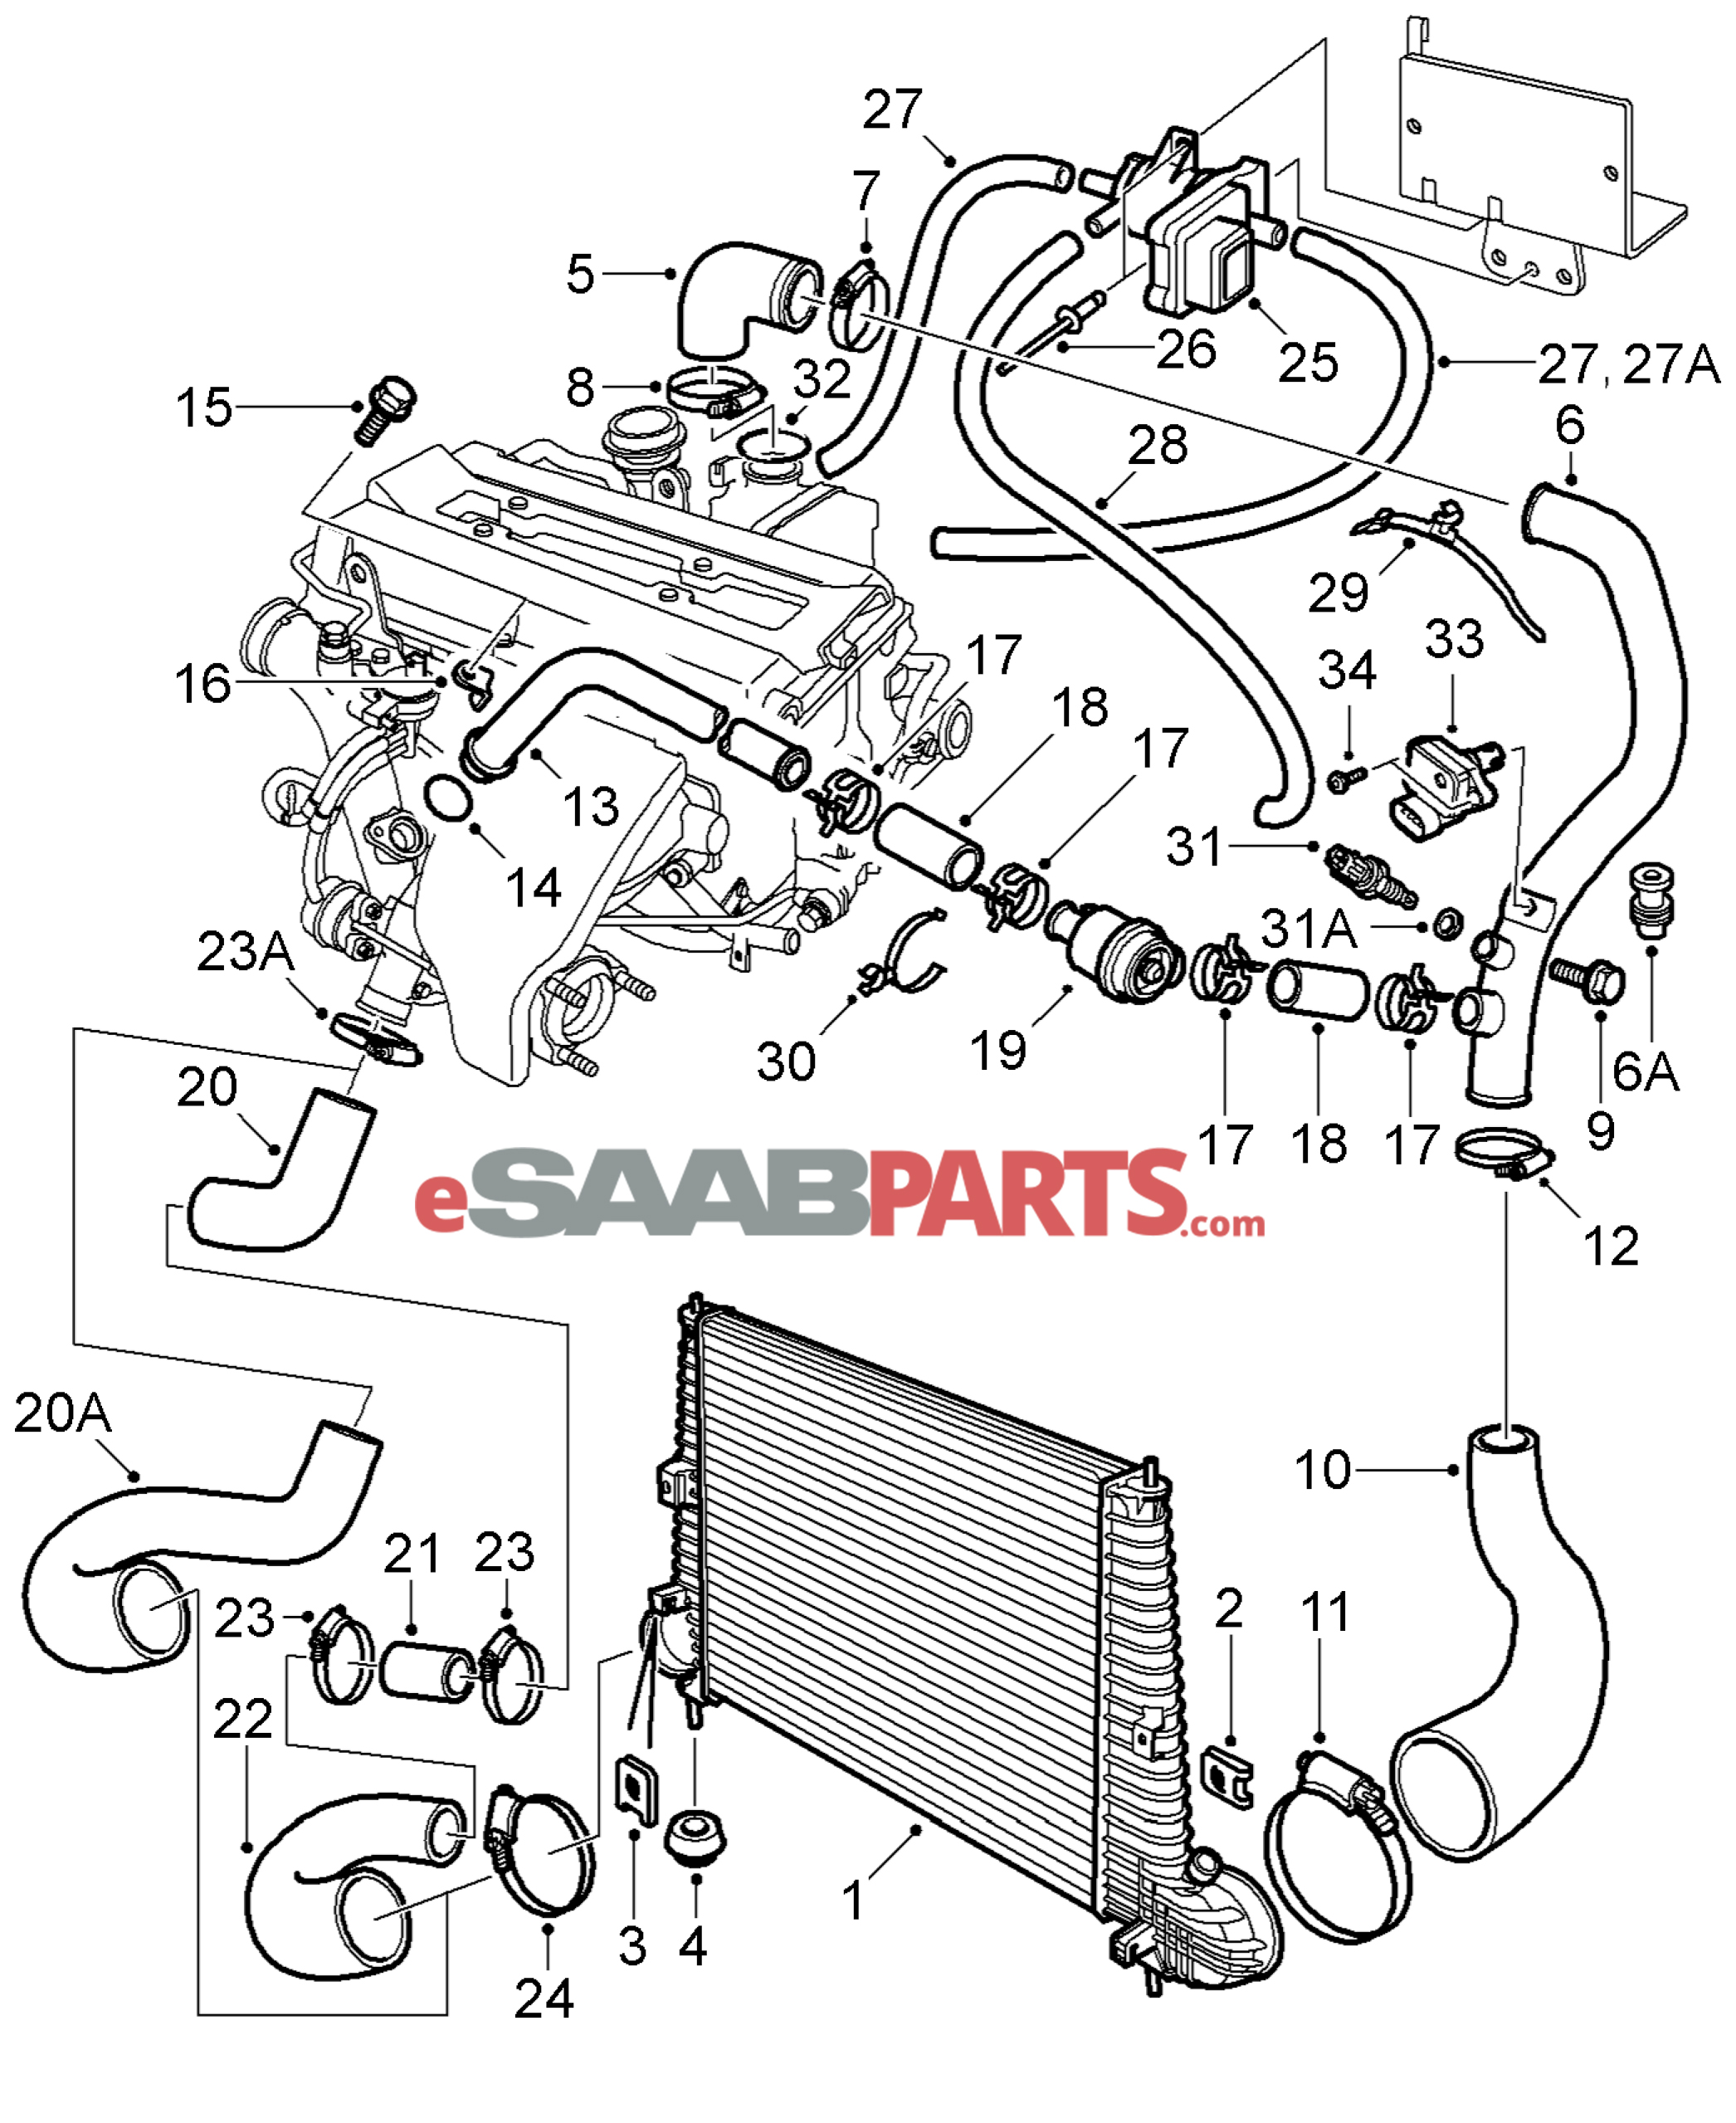 2003 saab 93 engine diagram 2003 engine image for user manual